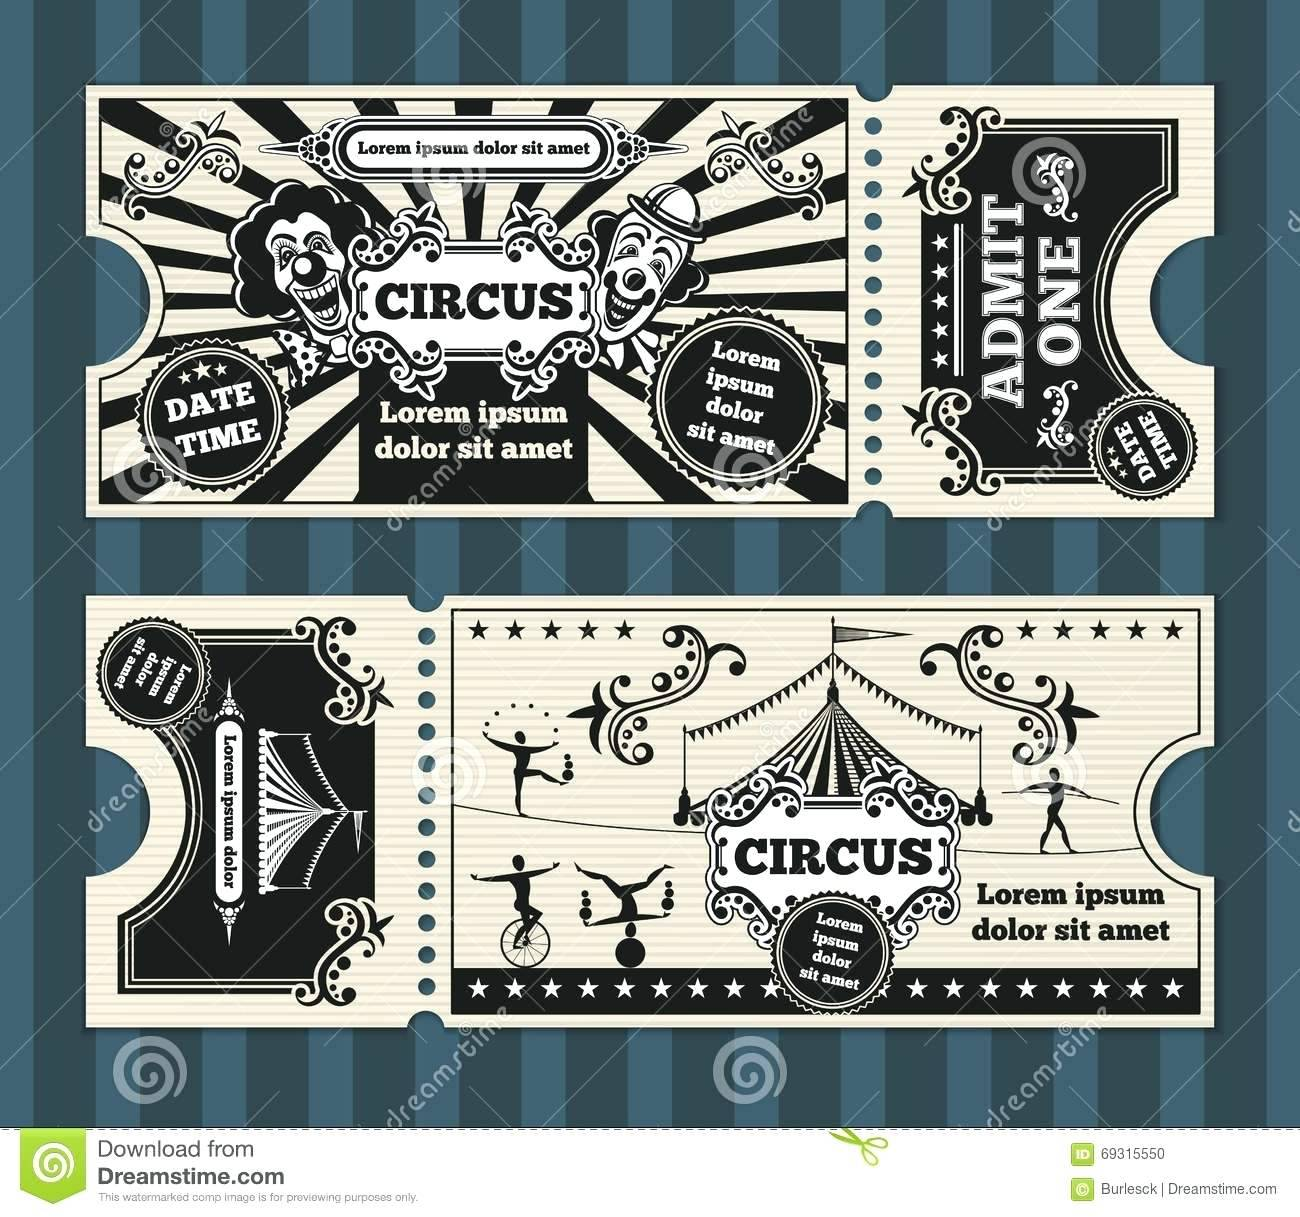 Old Circus Ticket Template